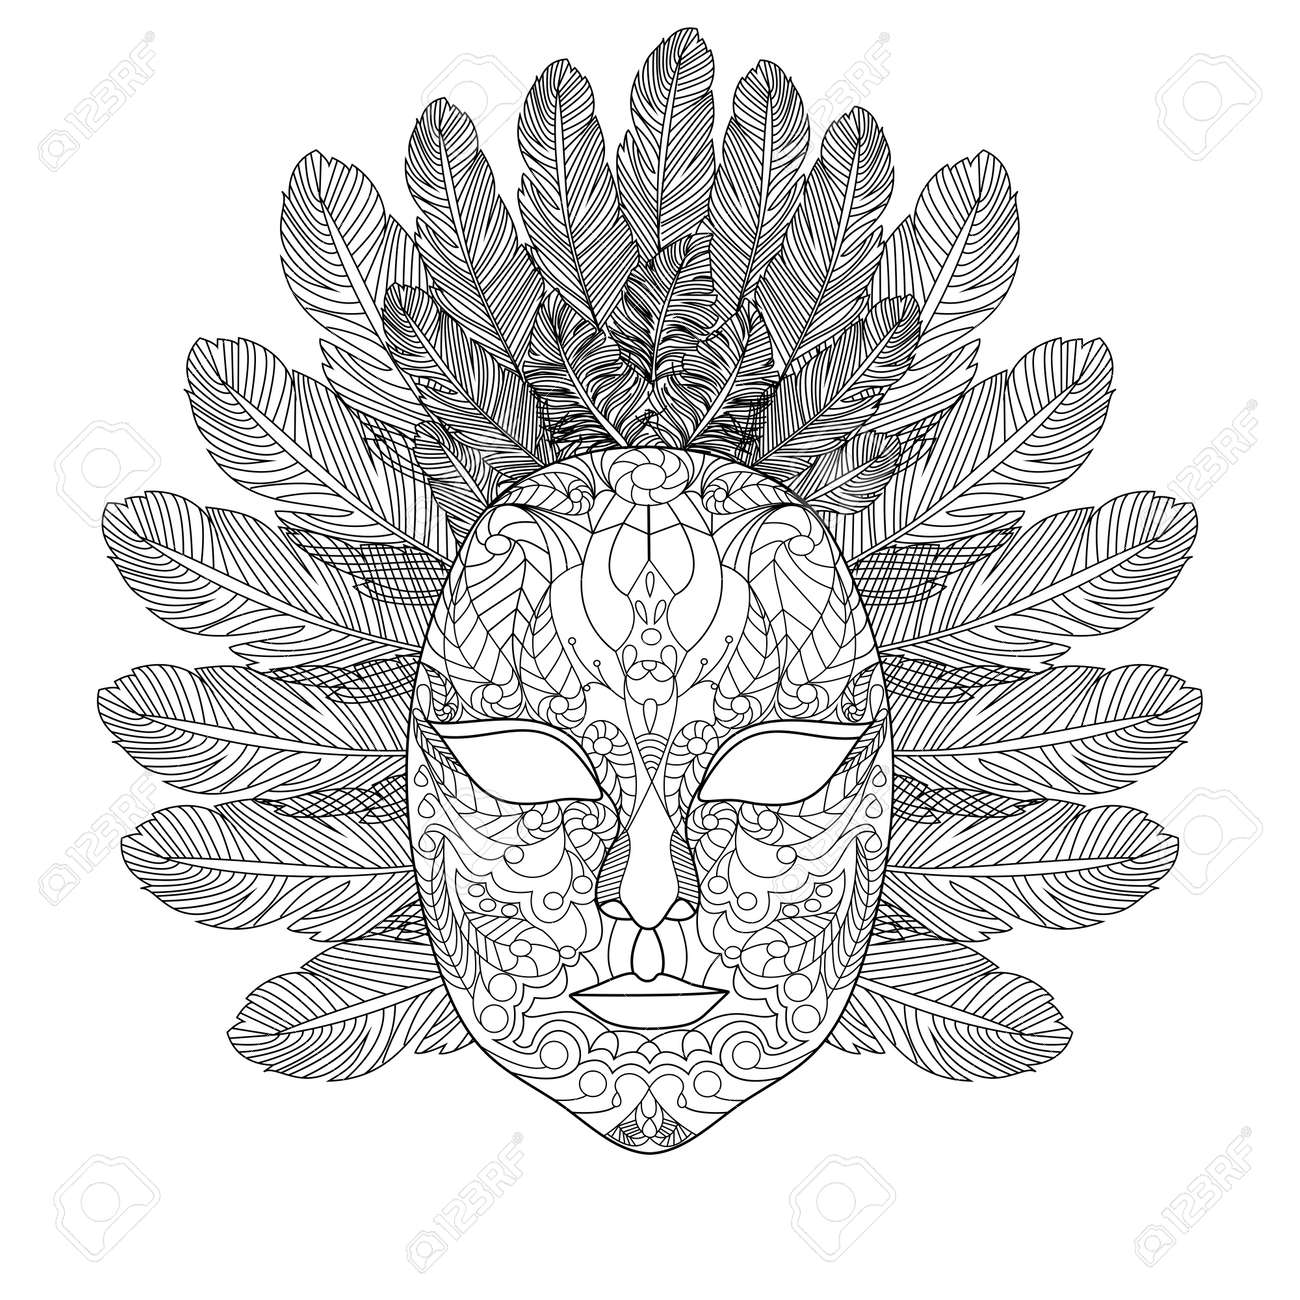 Carnival Mask Coloring Book For Adults Vector Illustration. Anti ...